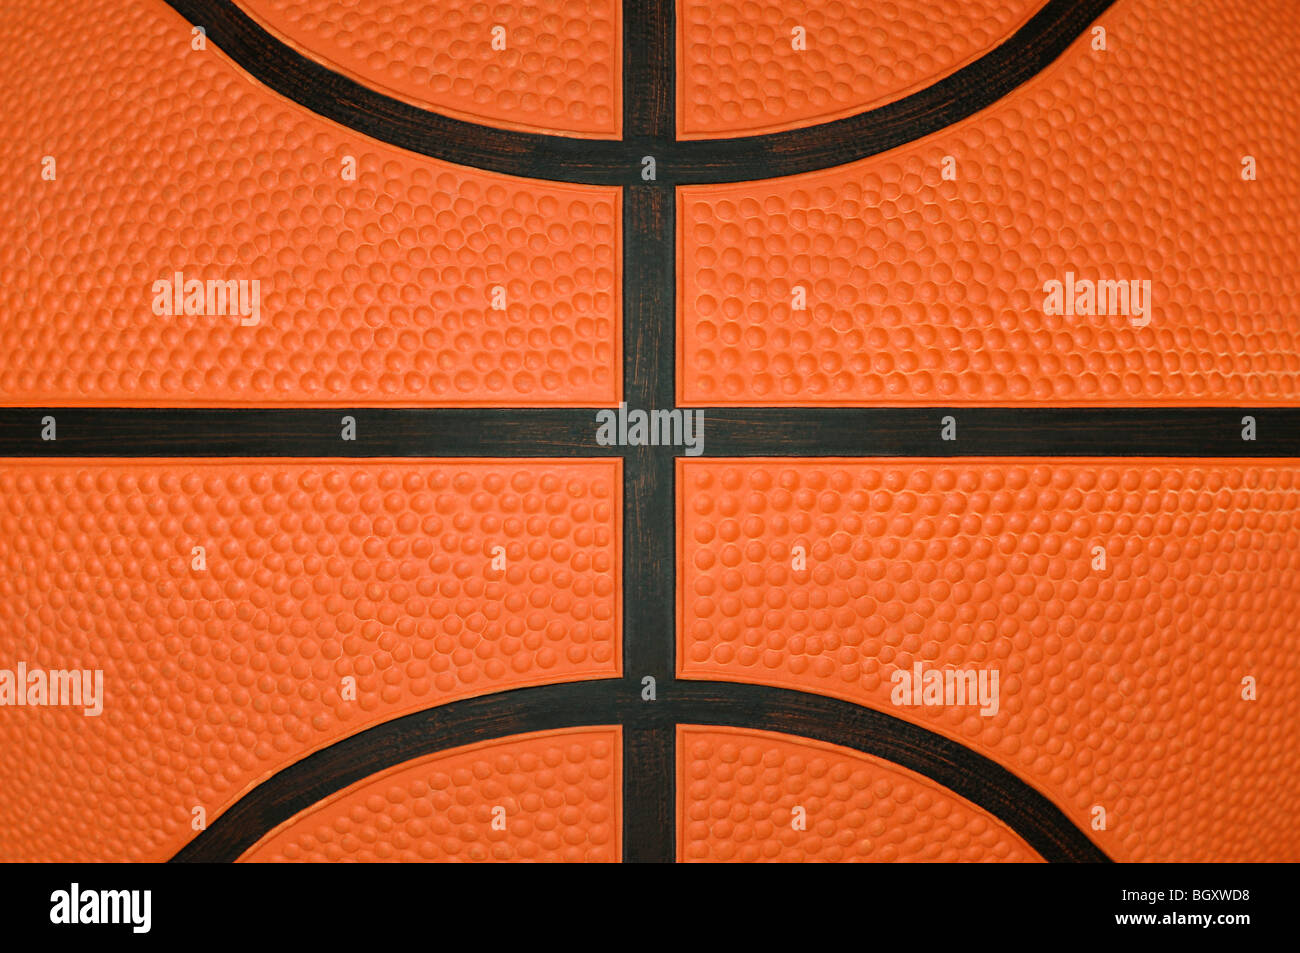 Basketball Close Up Stock Photo